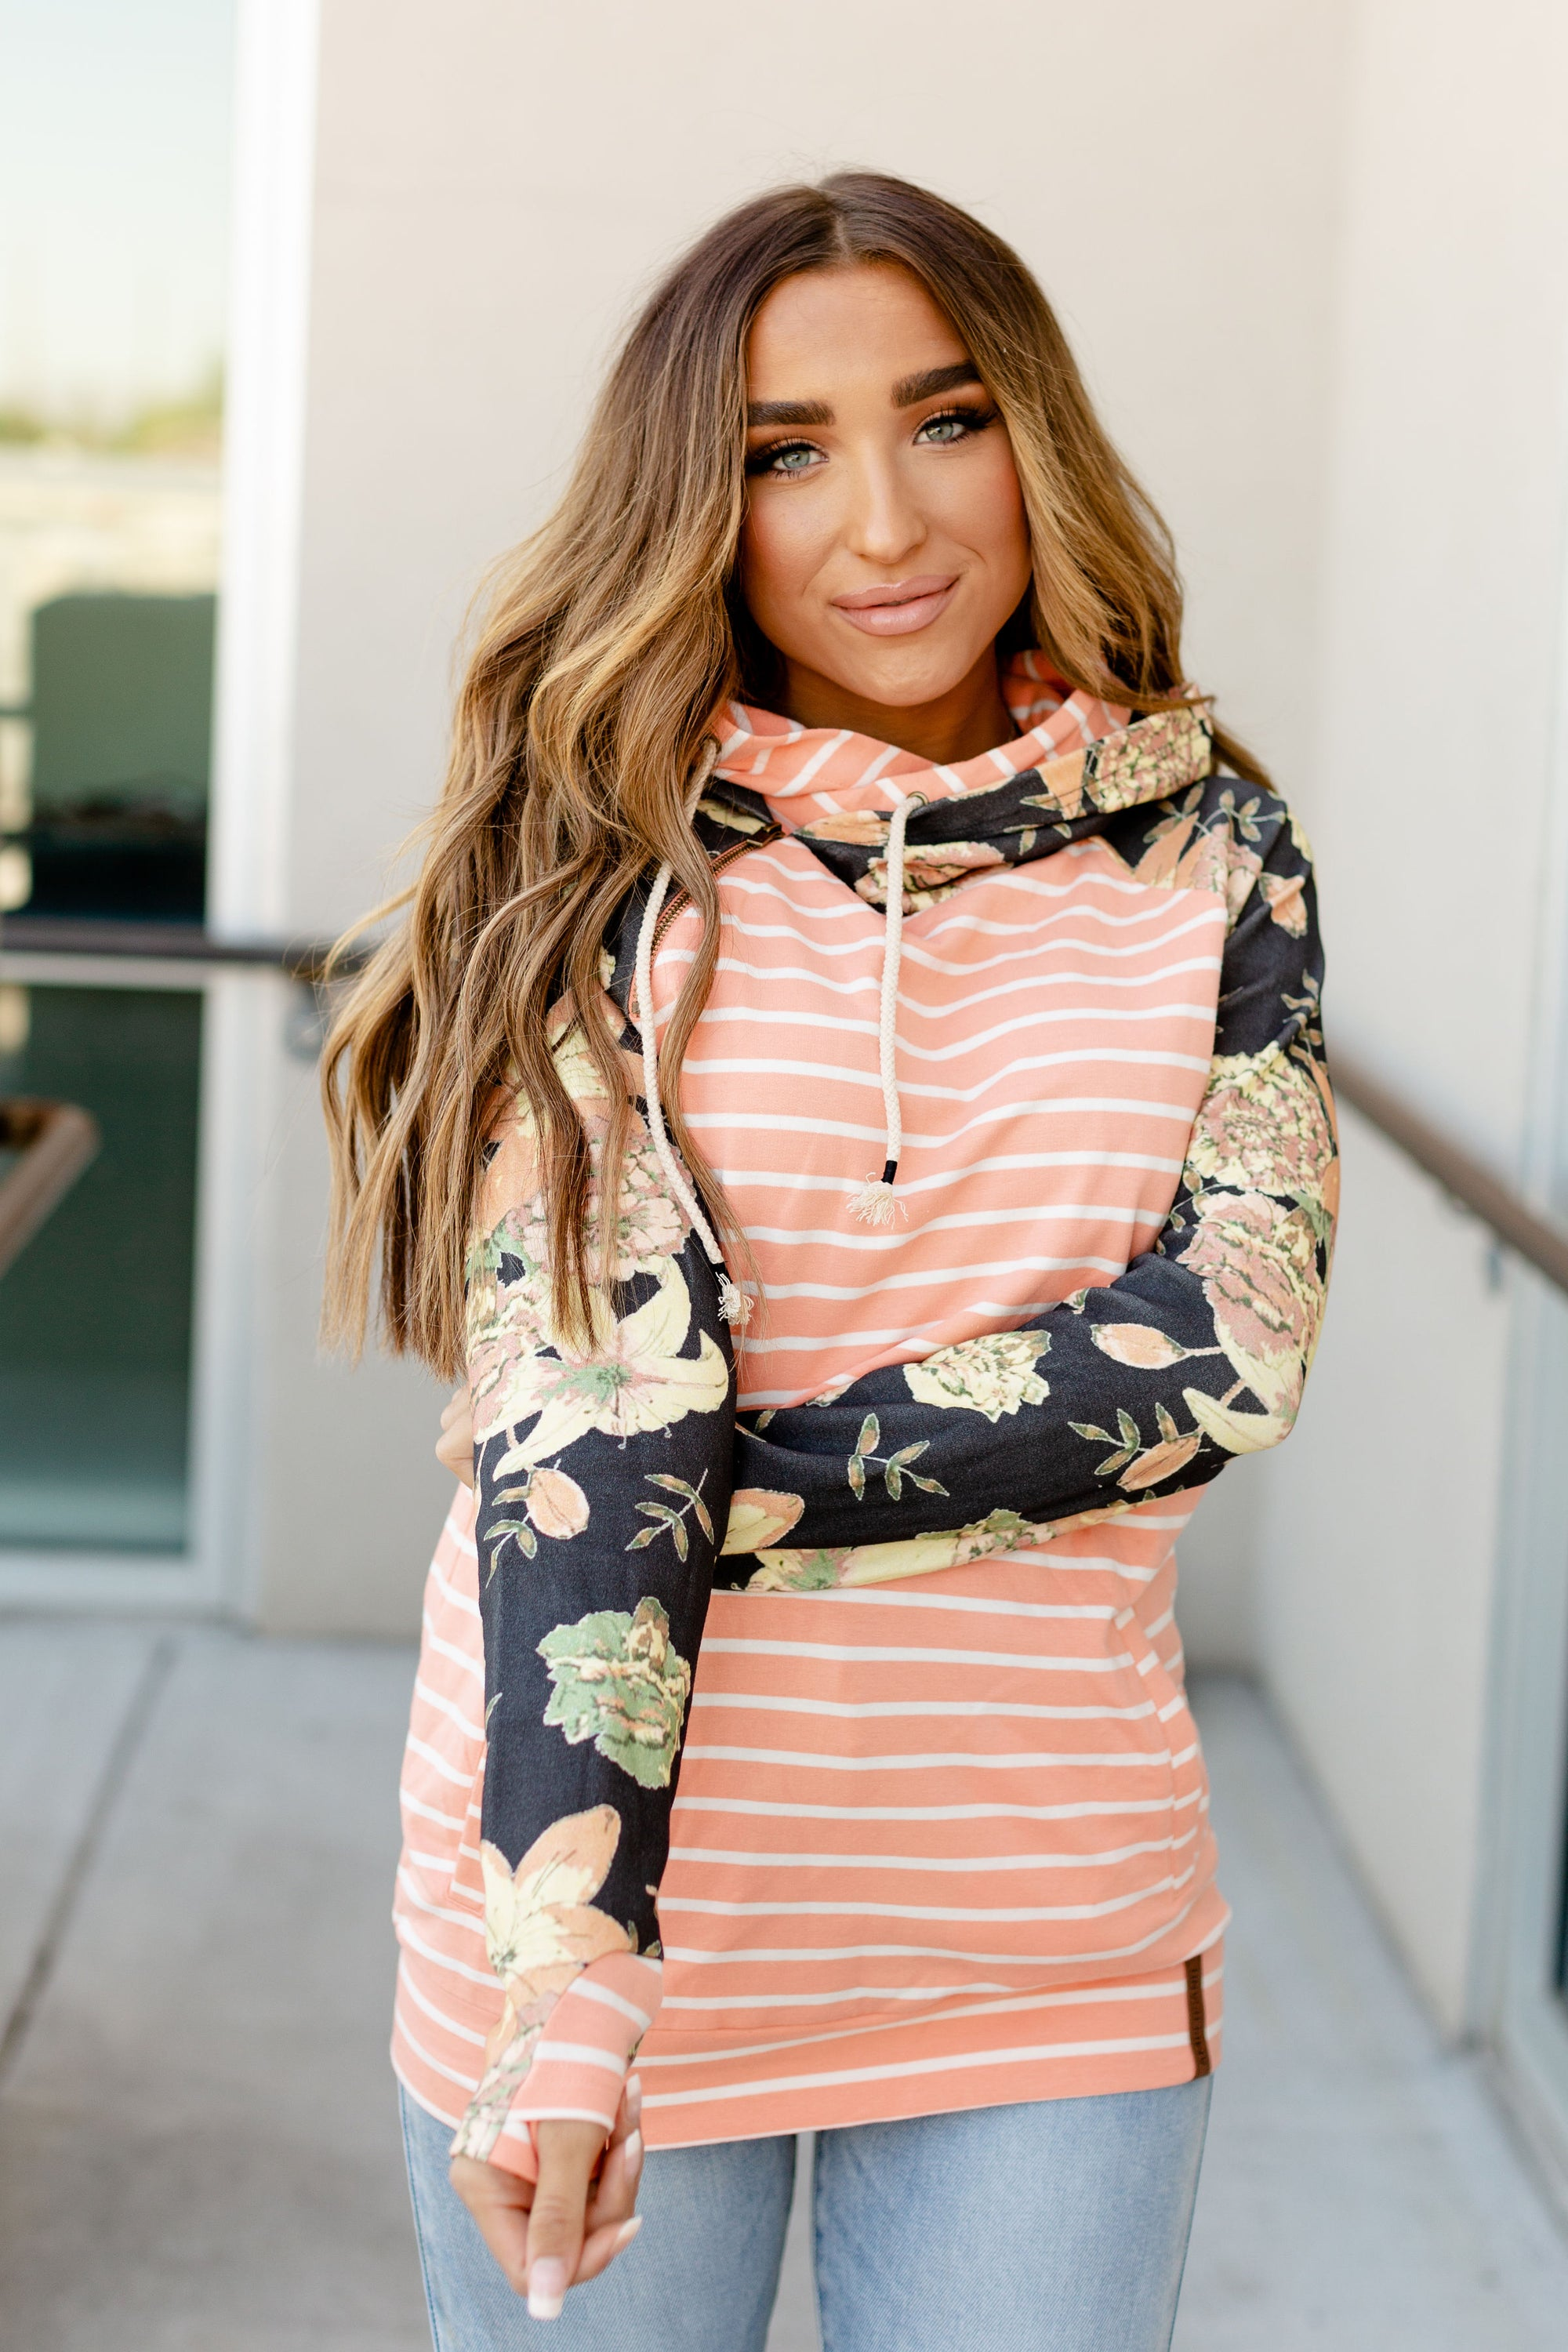 Ampersand Avenue DoubleHood Sweatshirt - Golden Hour